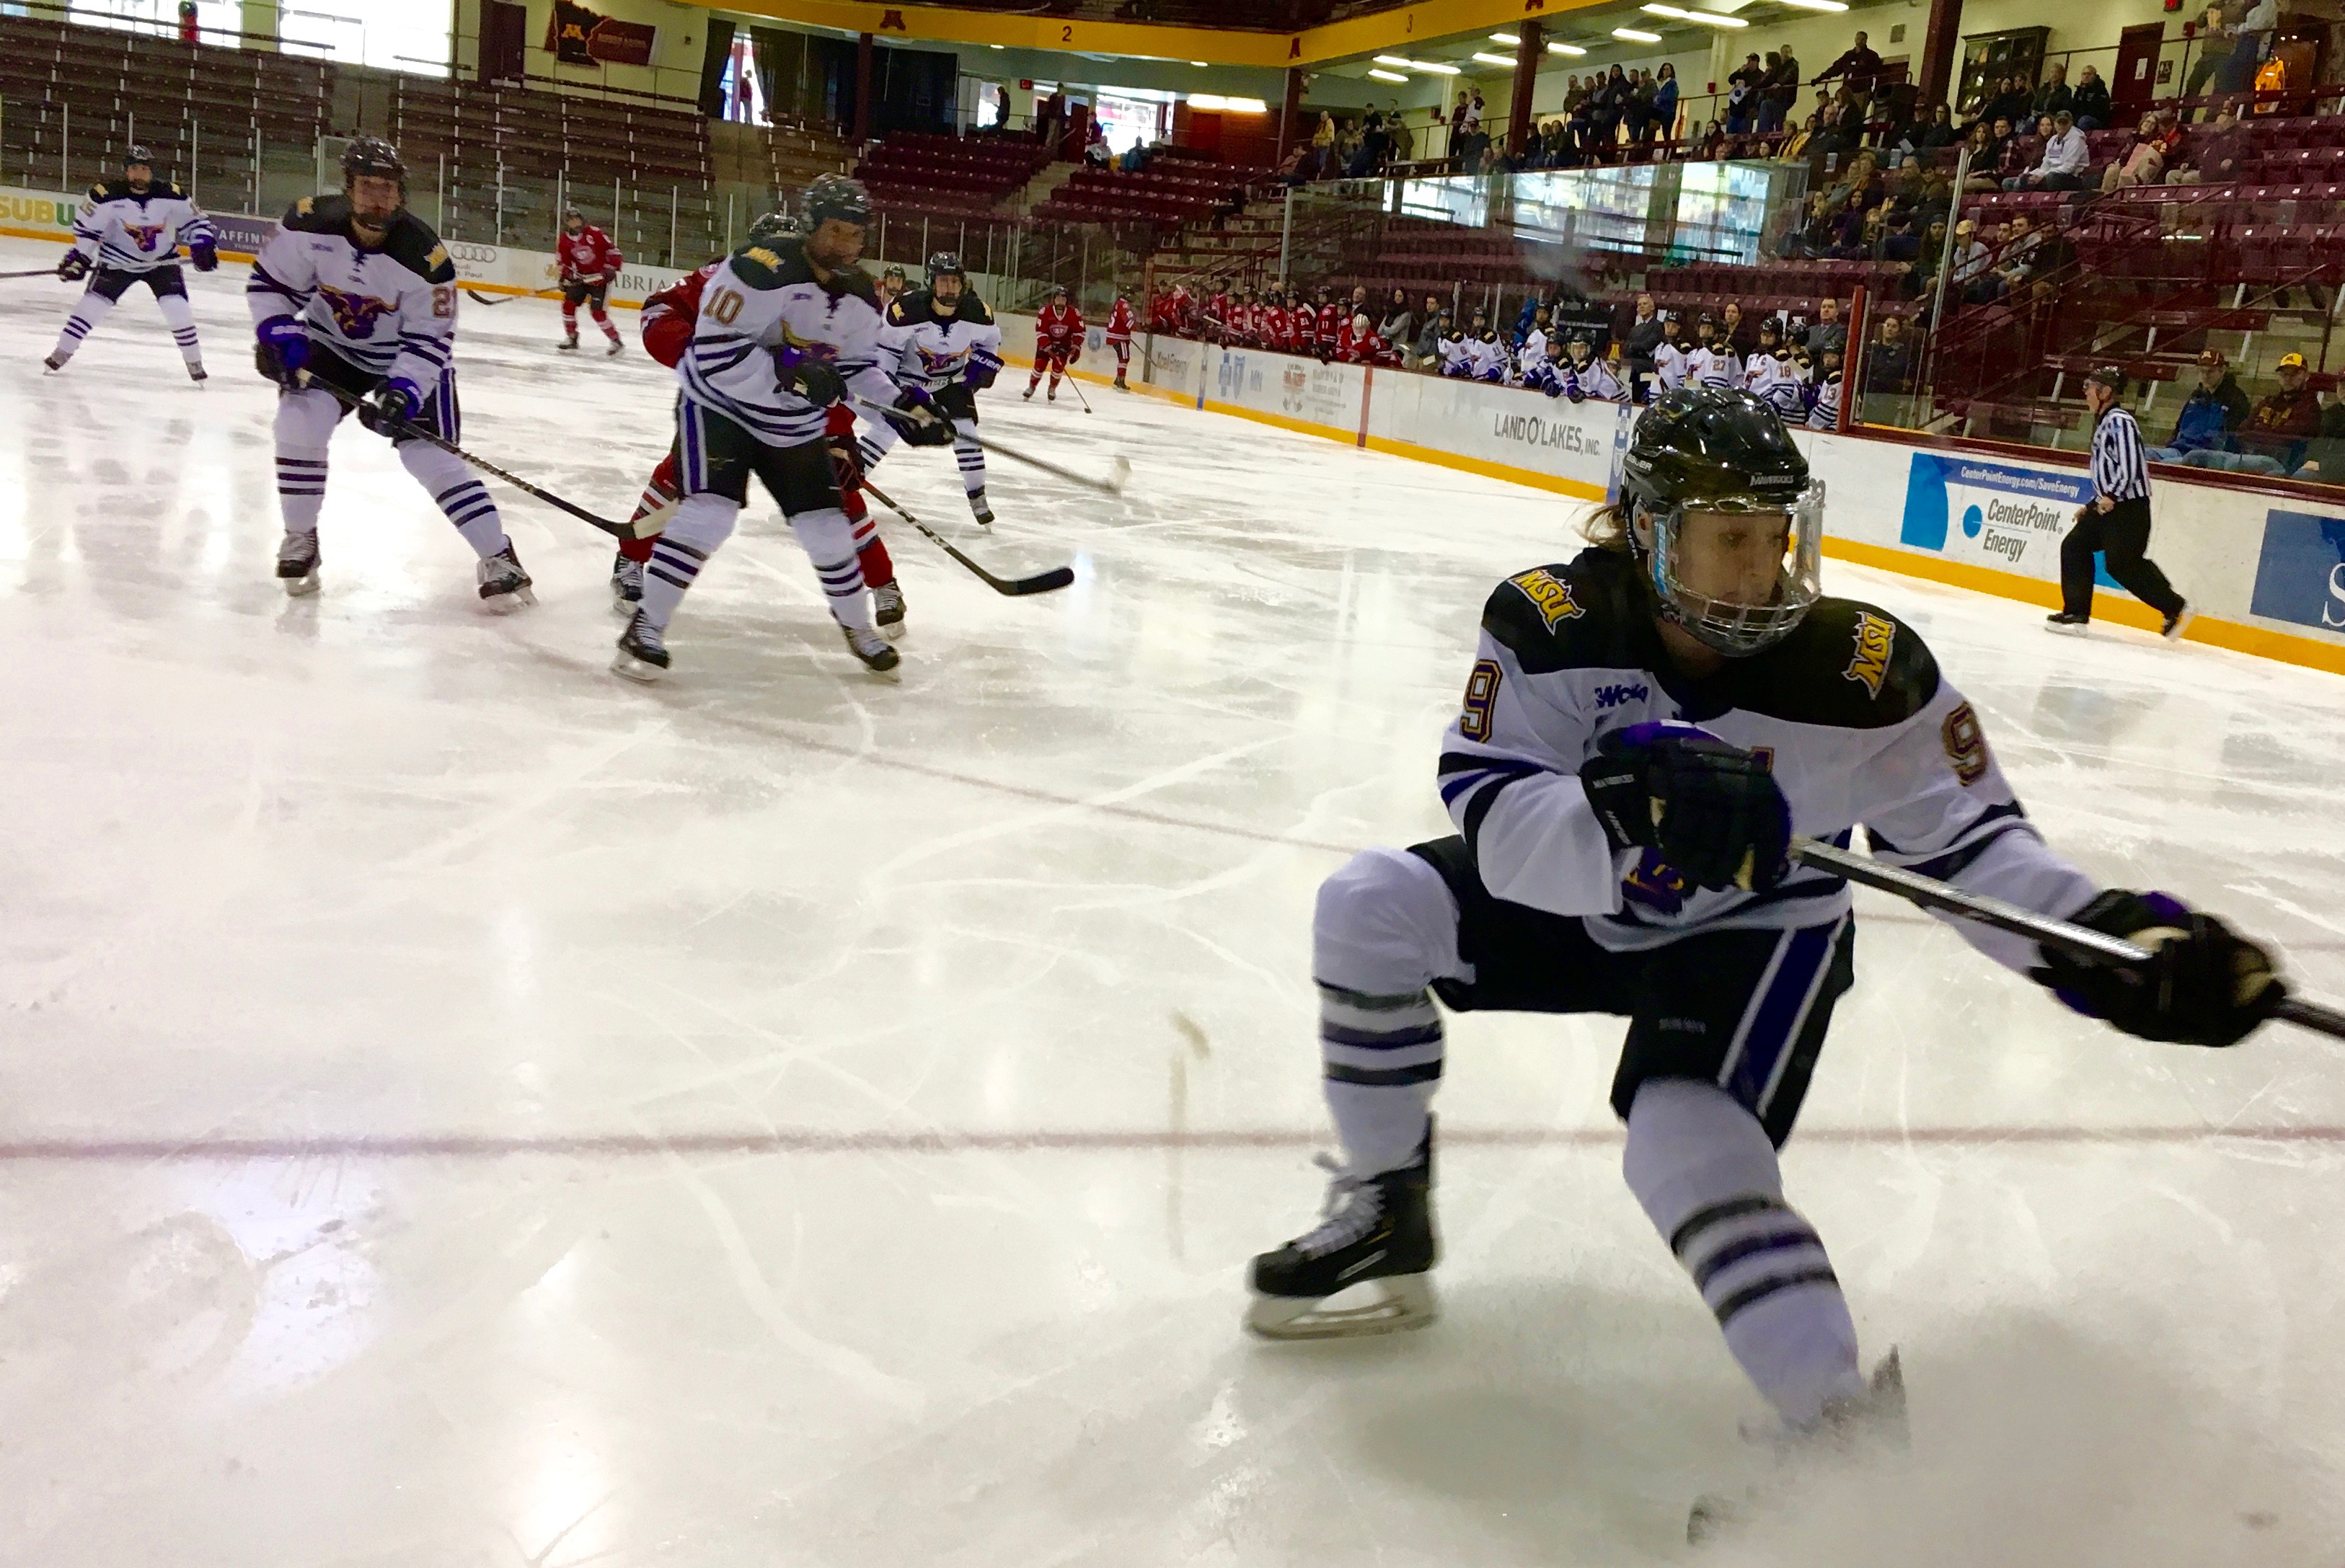 McKenzie Sederberg (#9) for Minnesota State reaching the boards and kicking up some ice in the process.